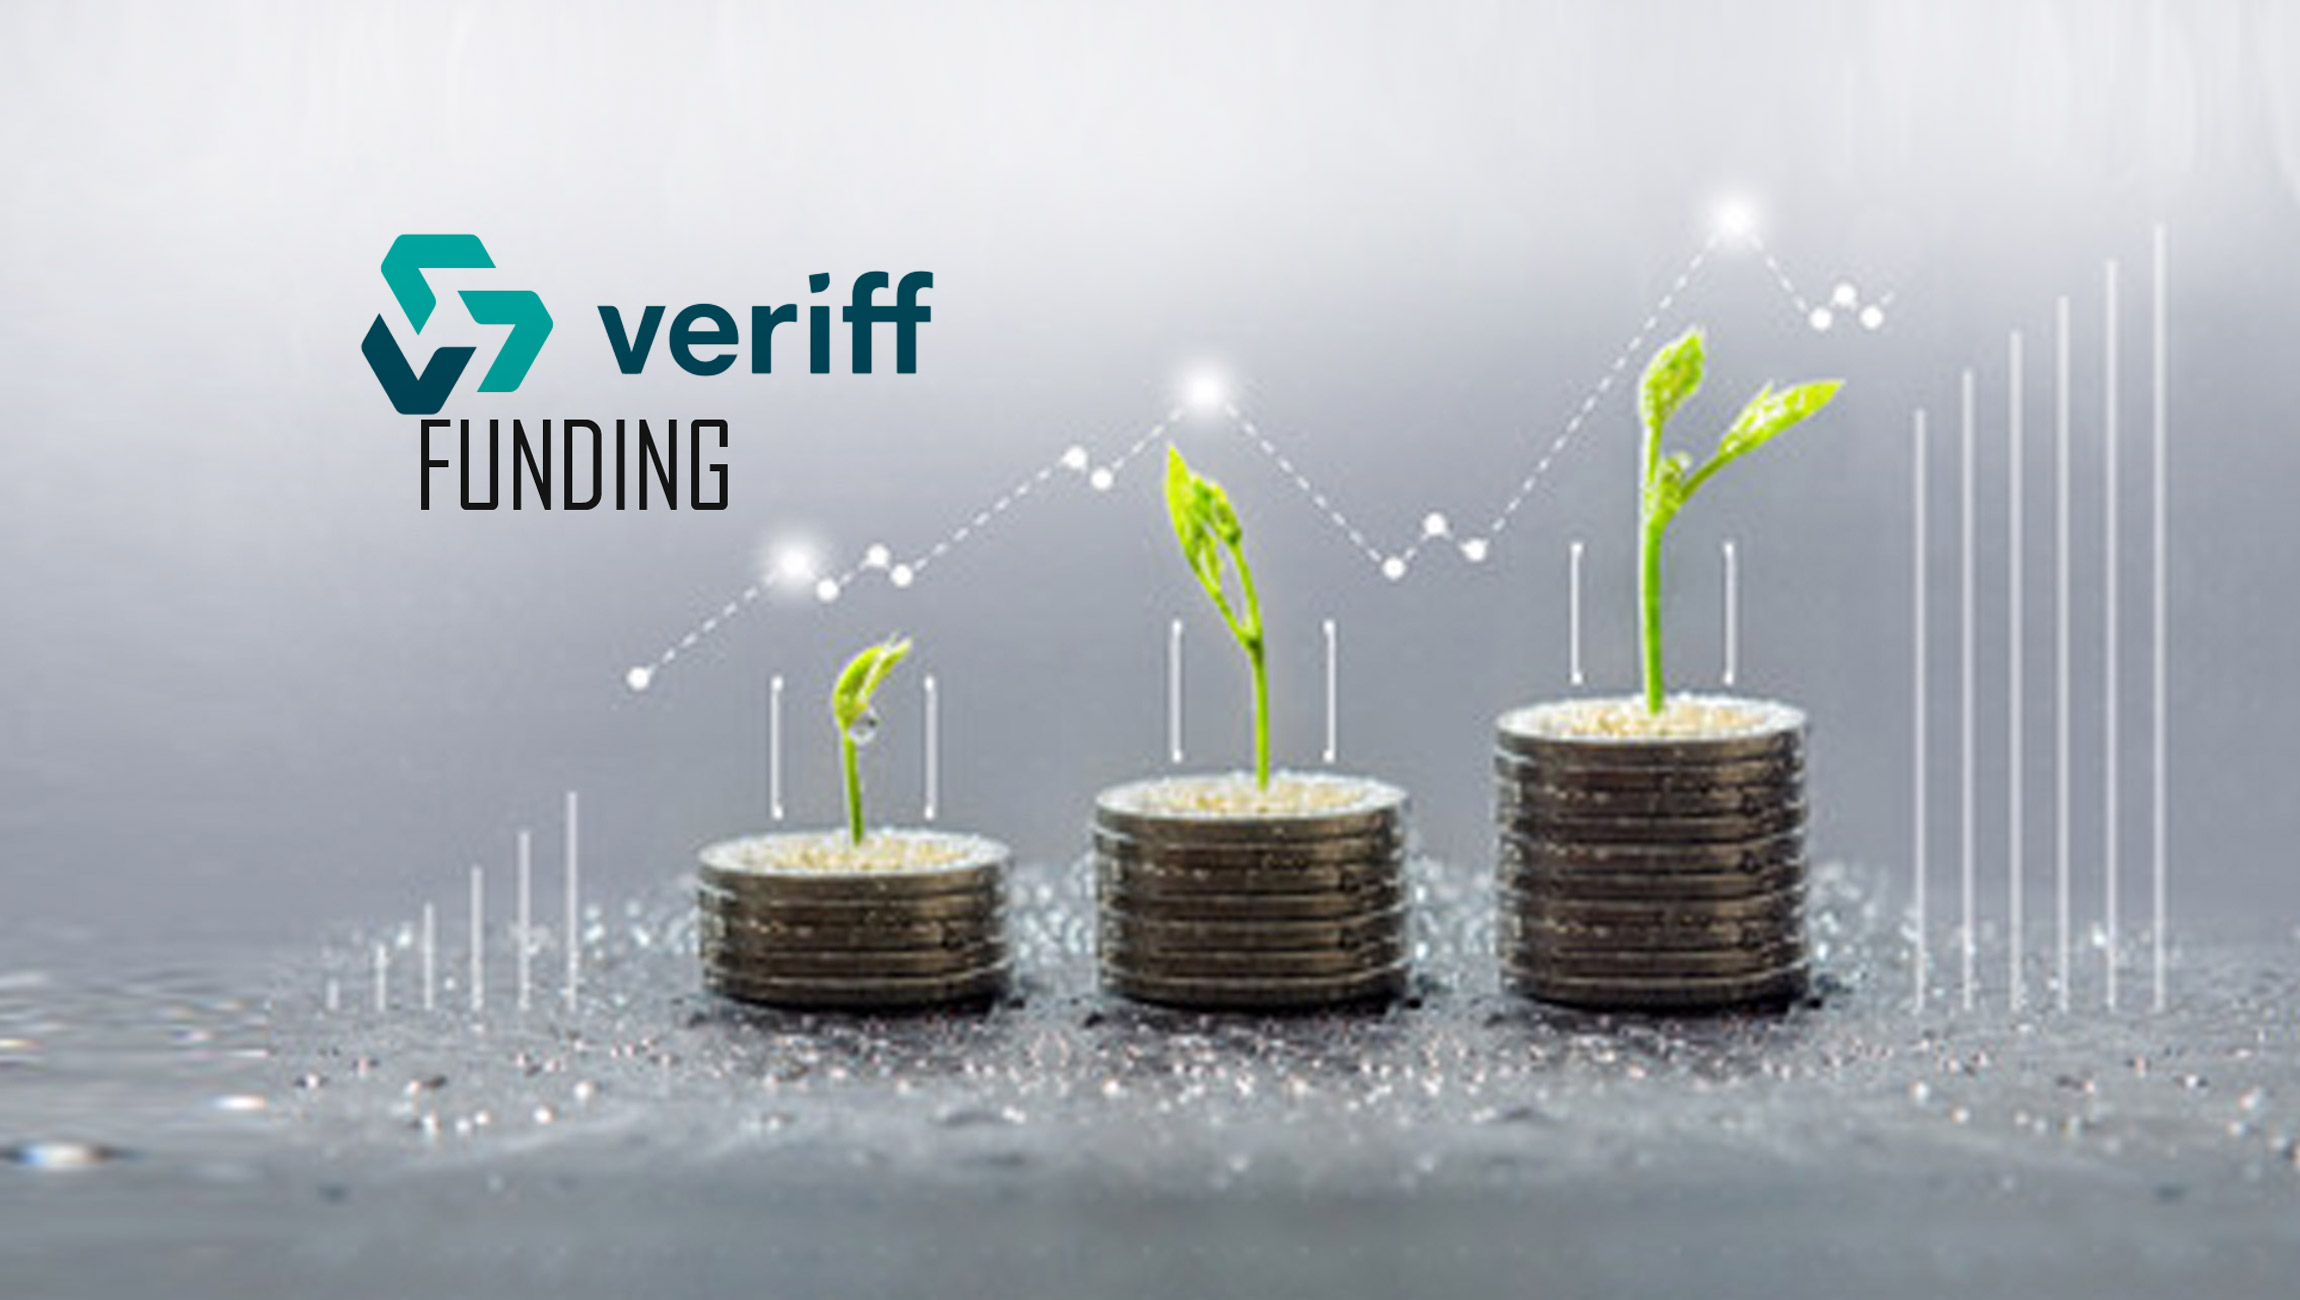 Veriff Secures $69M in Series B Funding to Combat Online Fraud, Making Identity Verification Hassle-Free